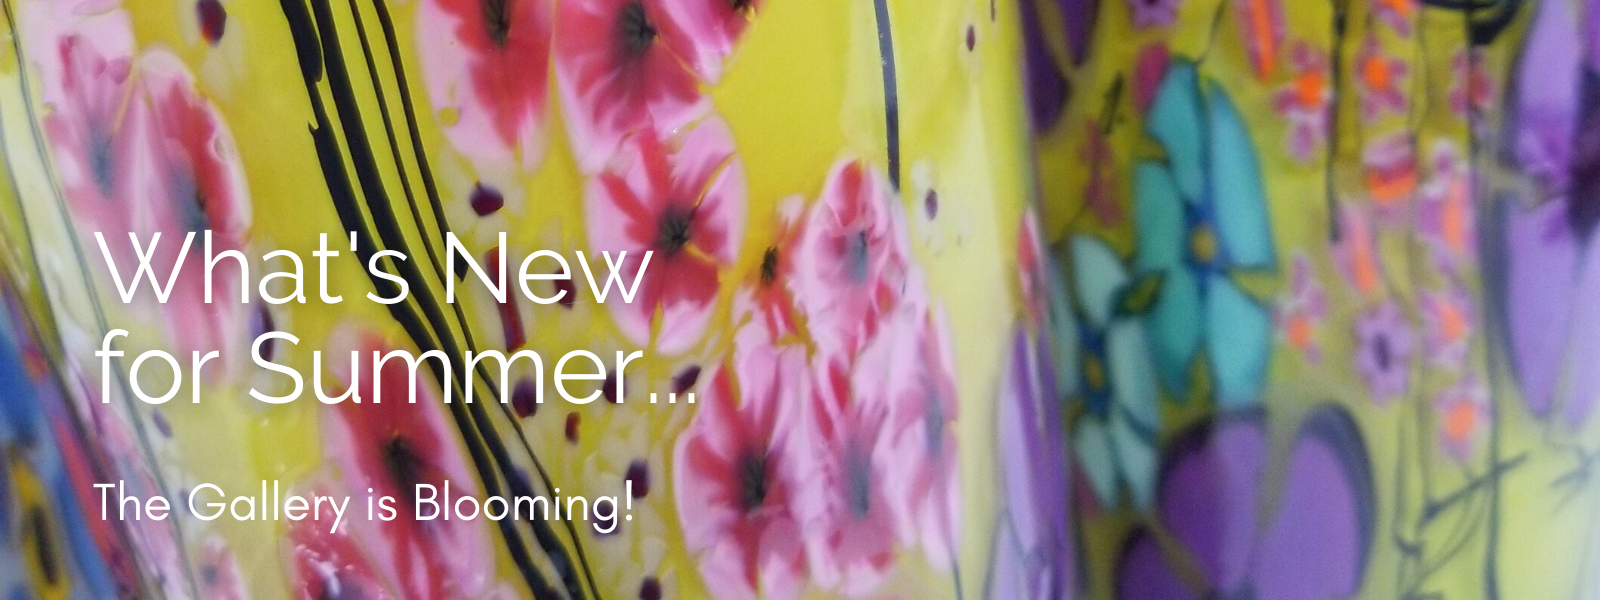 New for Summer! Gallery is blooming with new glass art